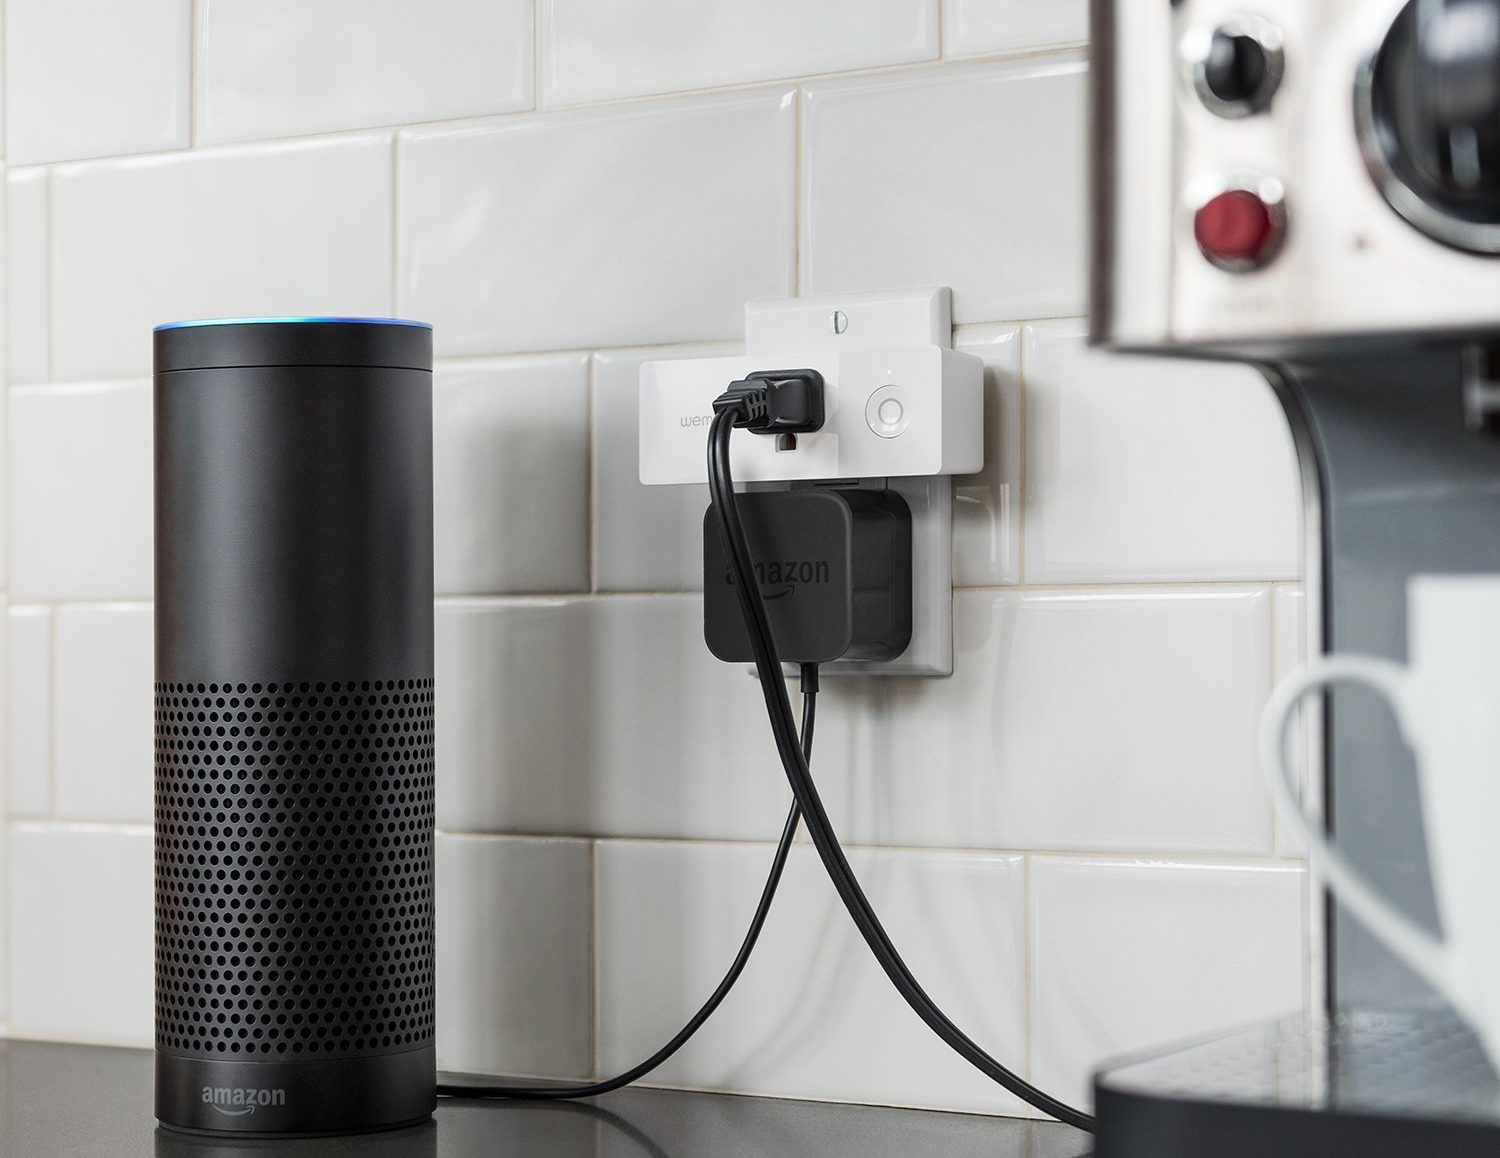 amazon device plugged into a wall